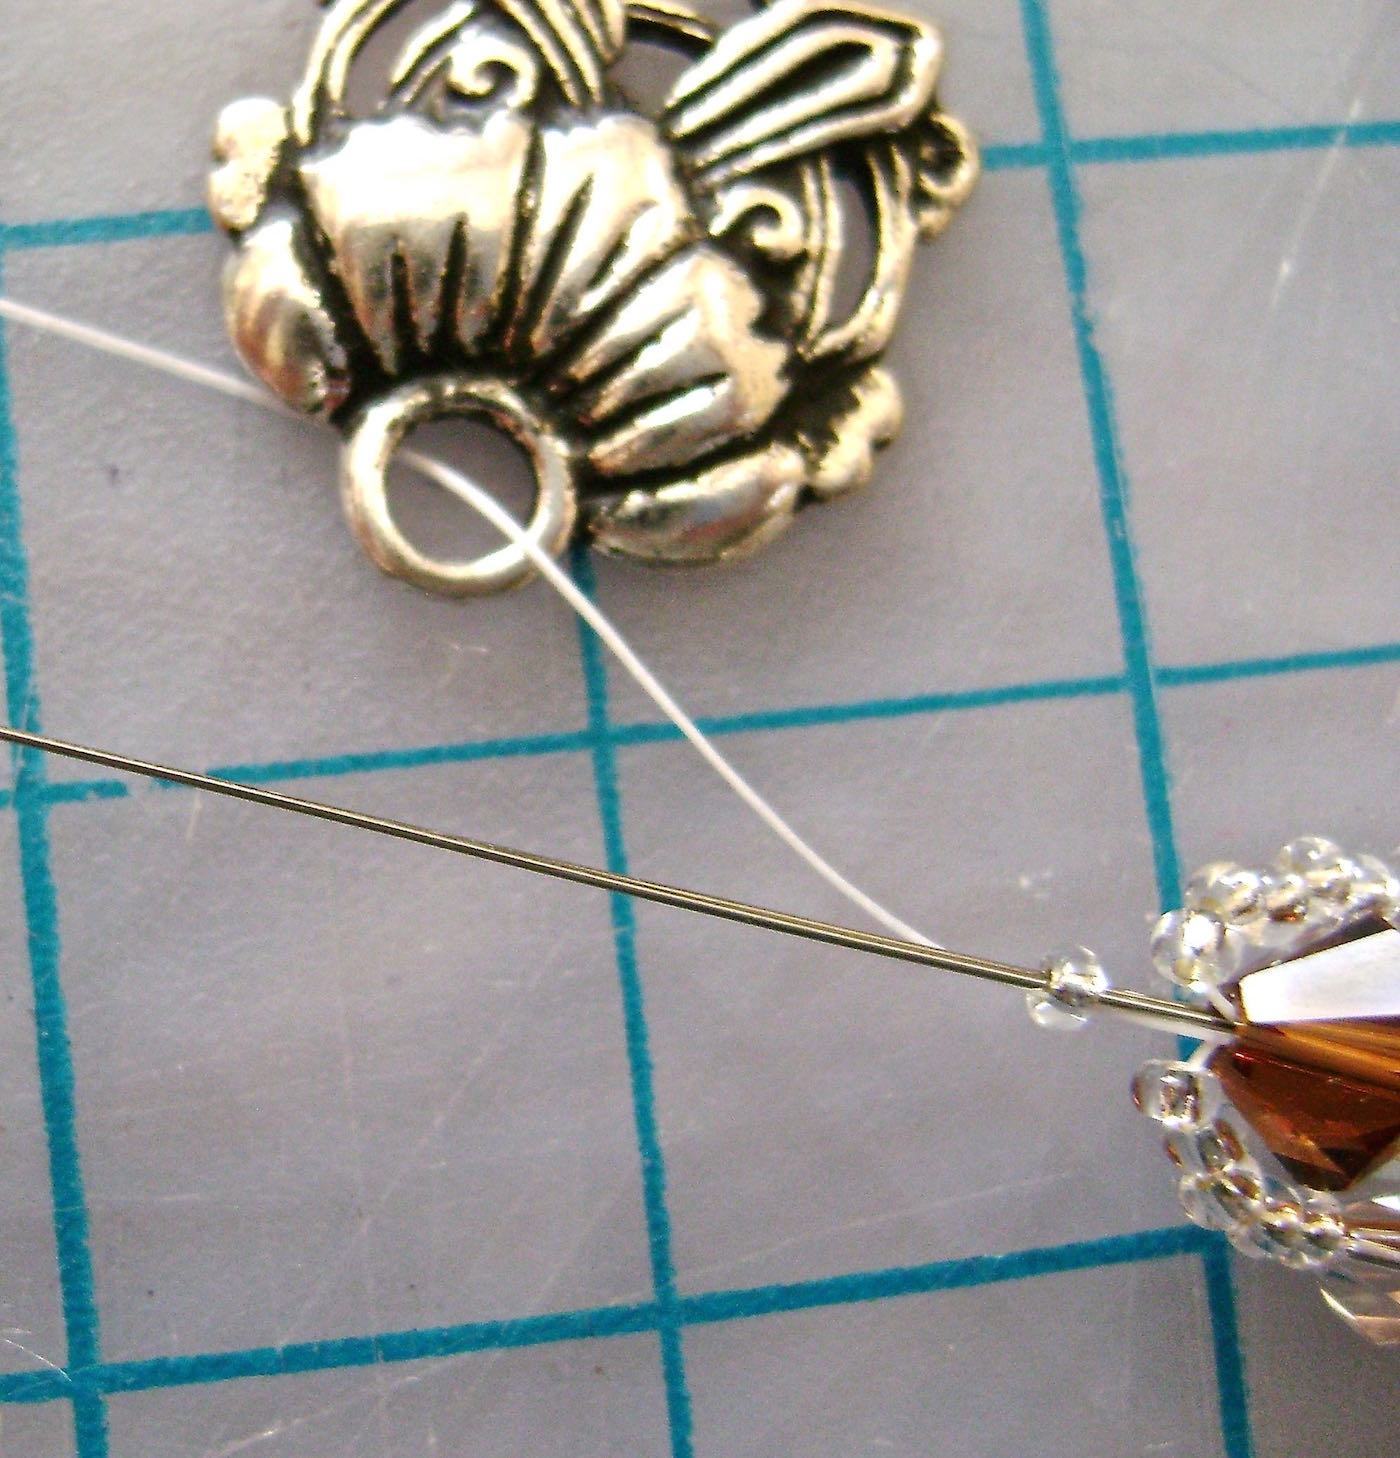 step 9 - Add one half of the clasp of your choice, then bring the needle back through the seed bead and up through the next two 6MM beads.